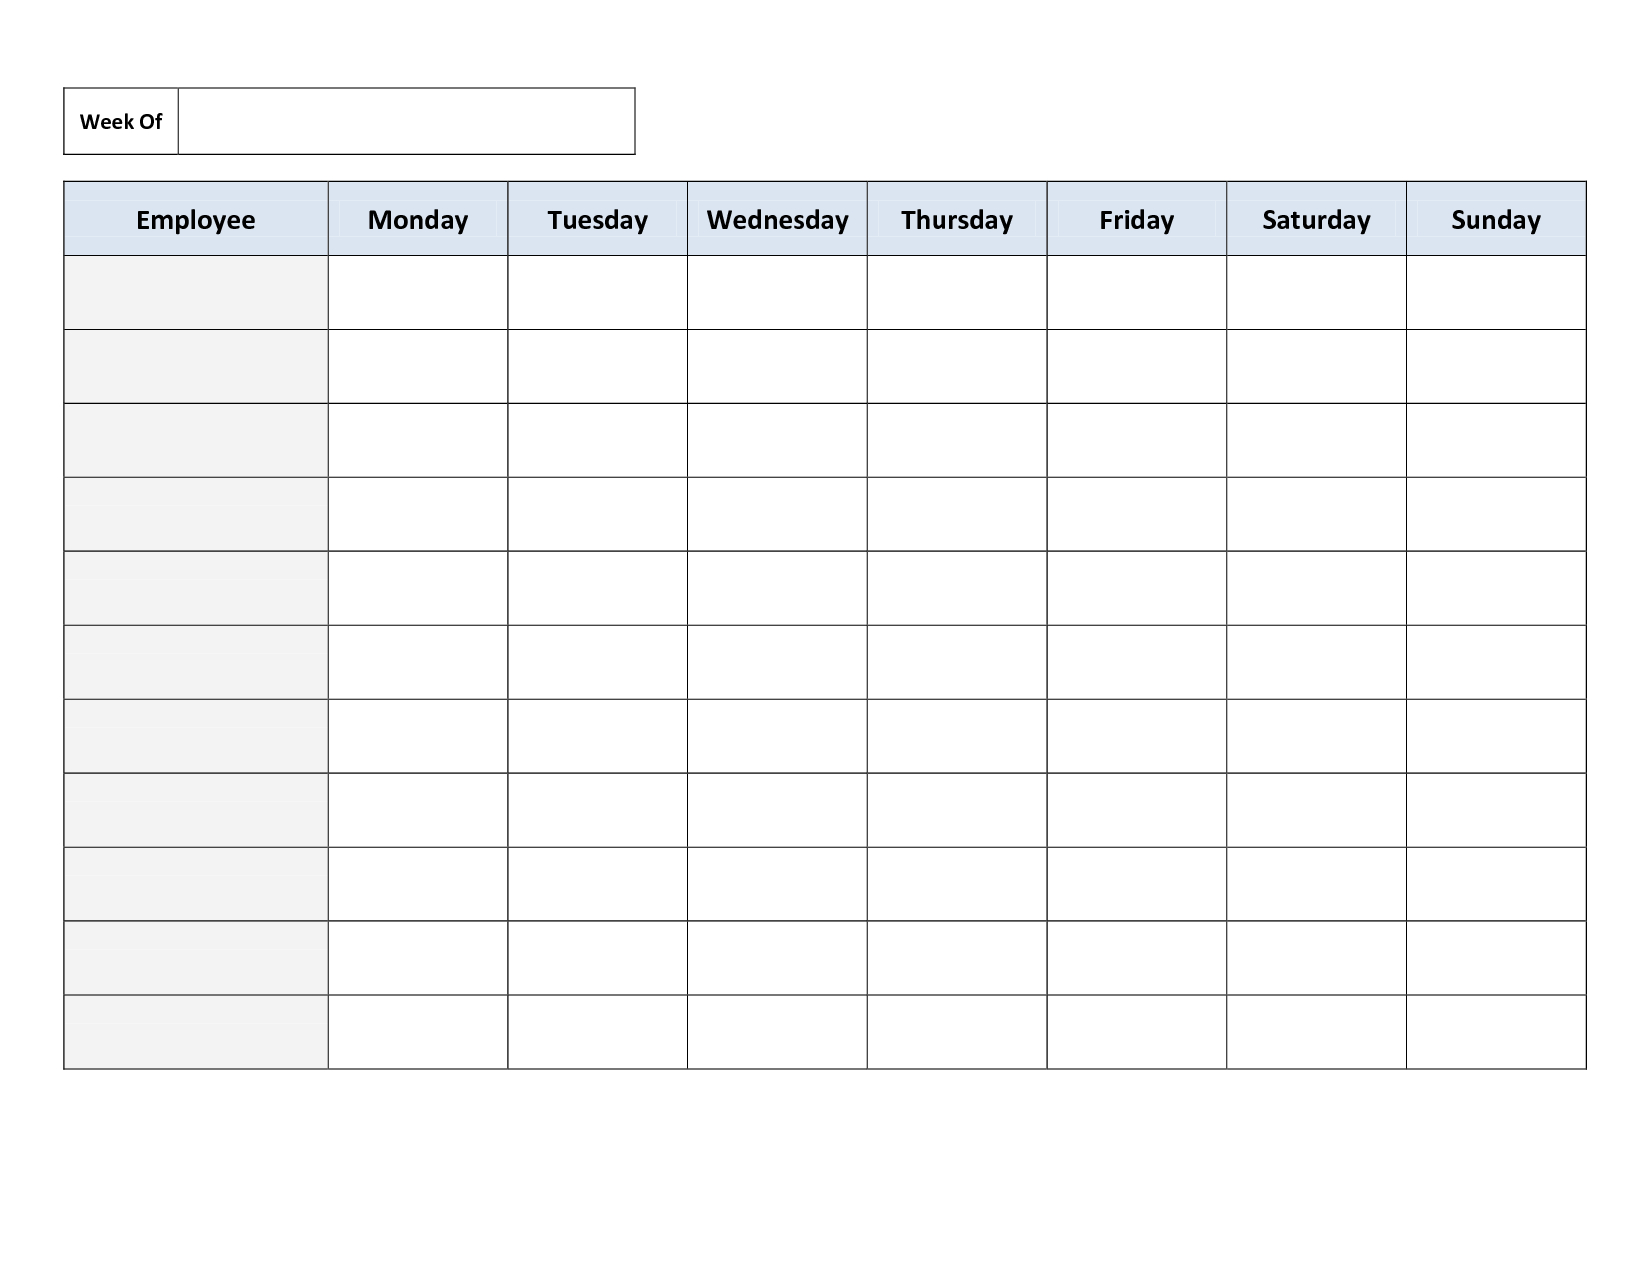 Free Printable Work Schedules | Weekly Employee Work Schedule - Free Printable Schedule